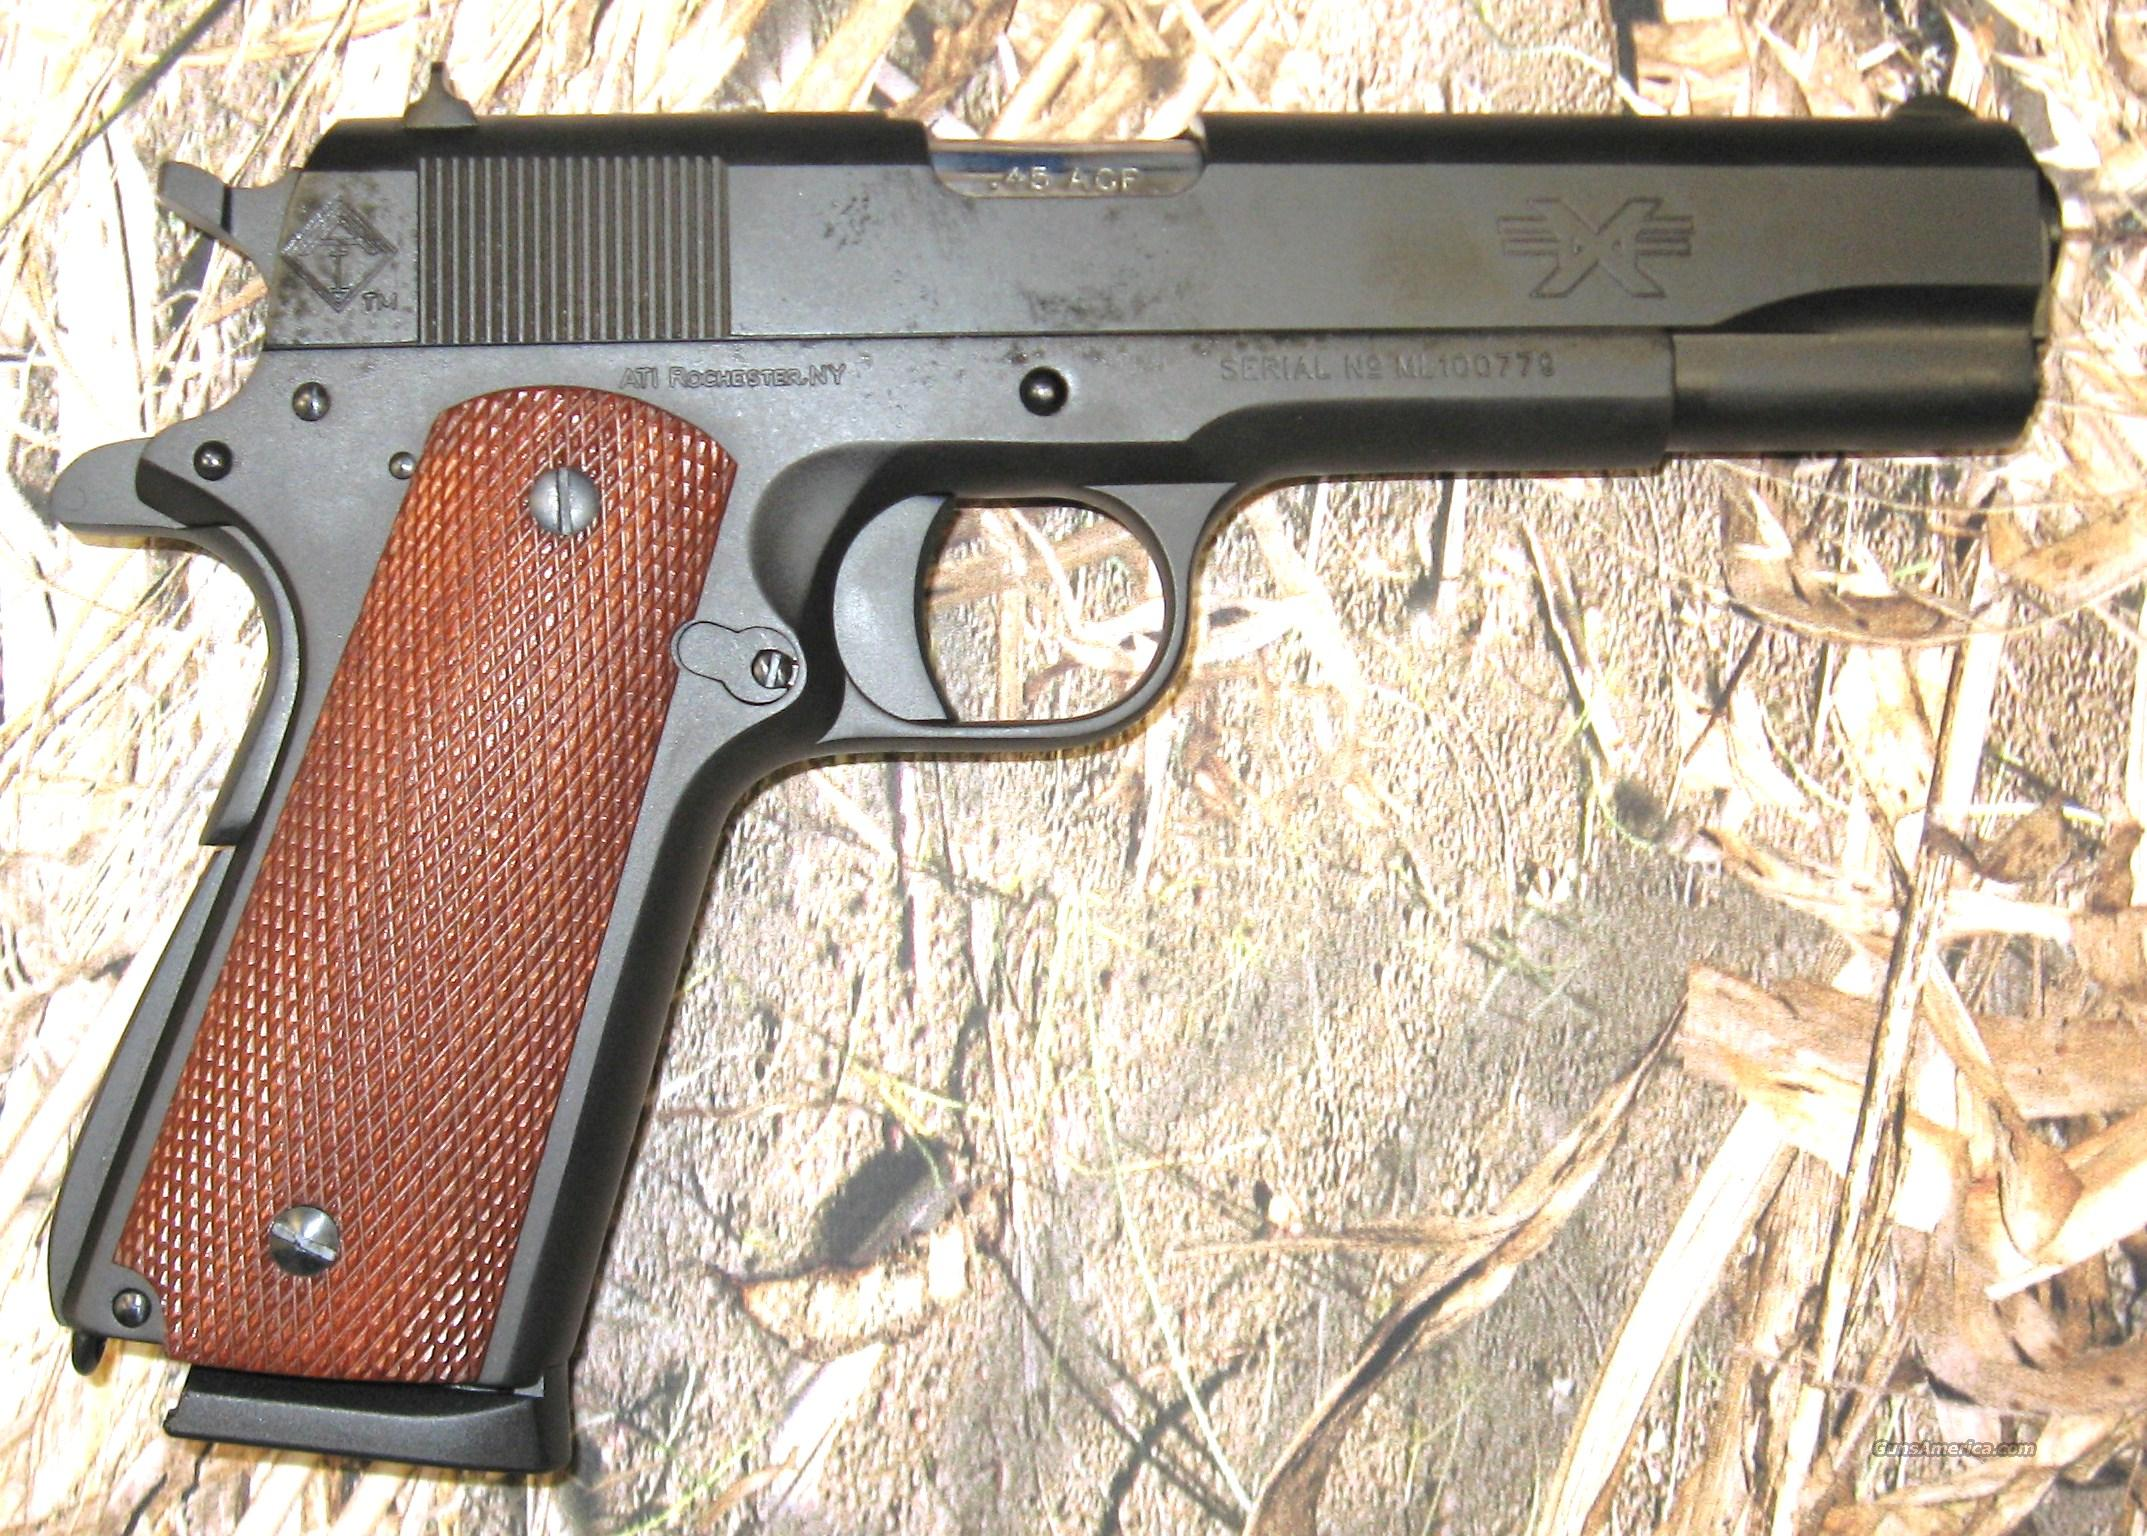 ATI M1911 Military  Guns > Pistols > 1911 Pistol Copies (non-Colt)